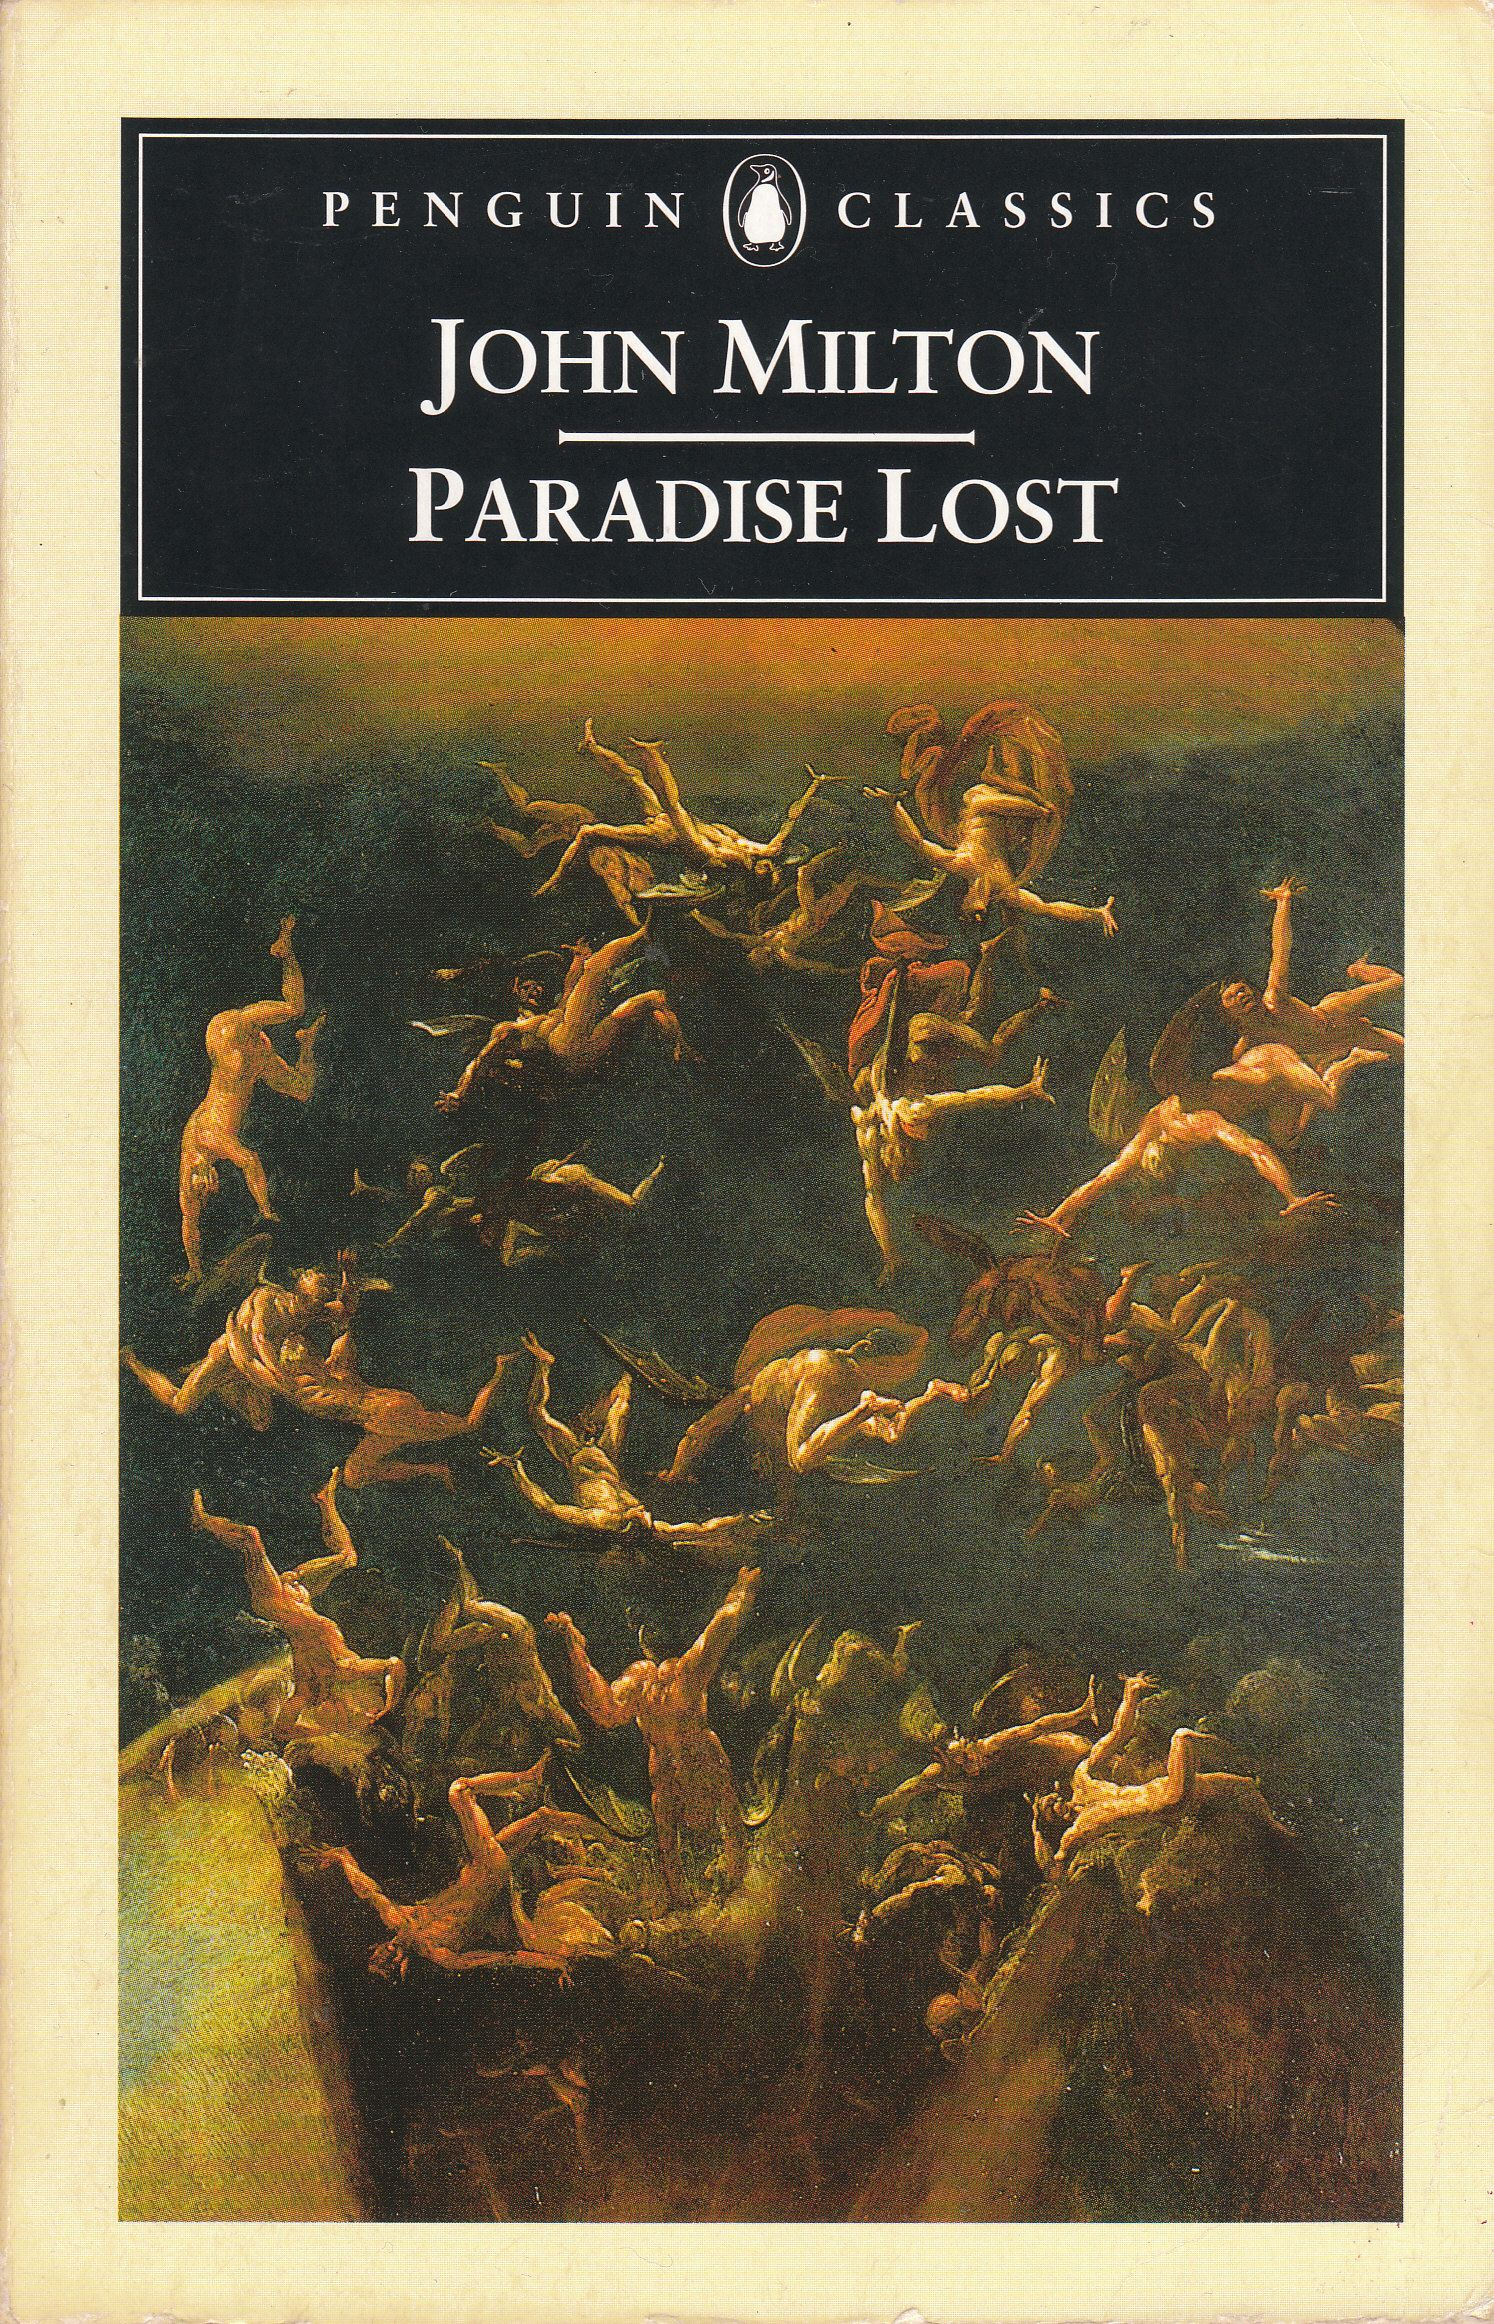 narcissism in john miltons paradise lost essay See more ideas about milton poetry, john milton paradise lost and lost paradise satan speaks with sin and death: paradise lost - gustave doré the narcissist needs this complete network to survive as well as enable them to escape exposure when they get caught in yet another extortion of a person's life and.